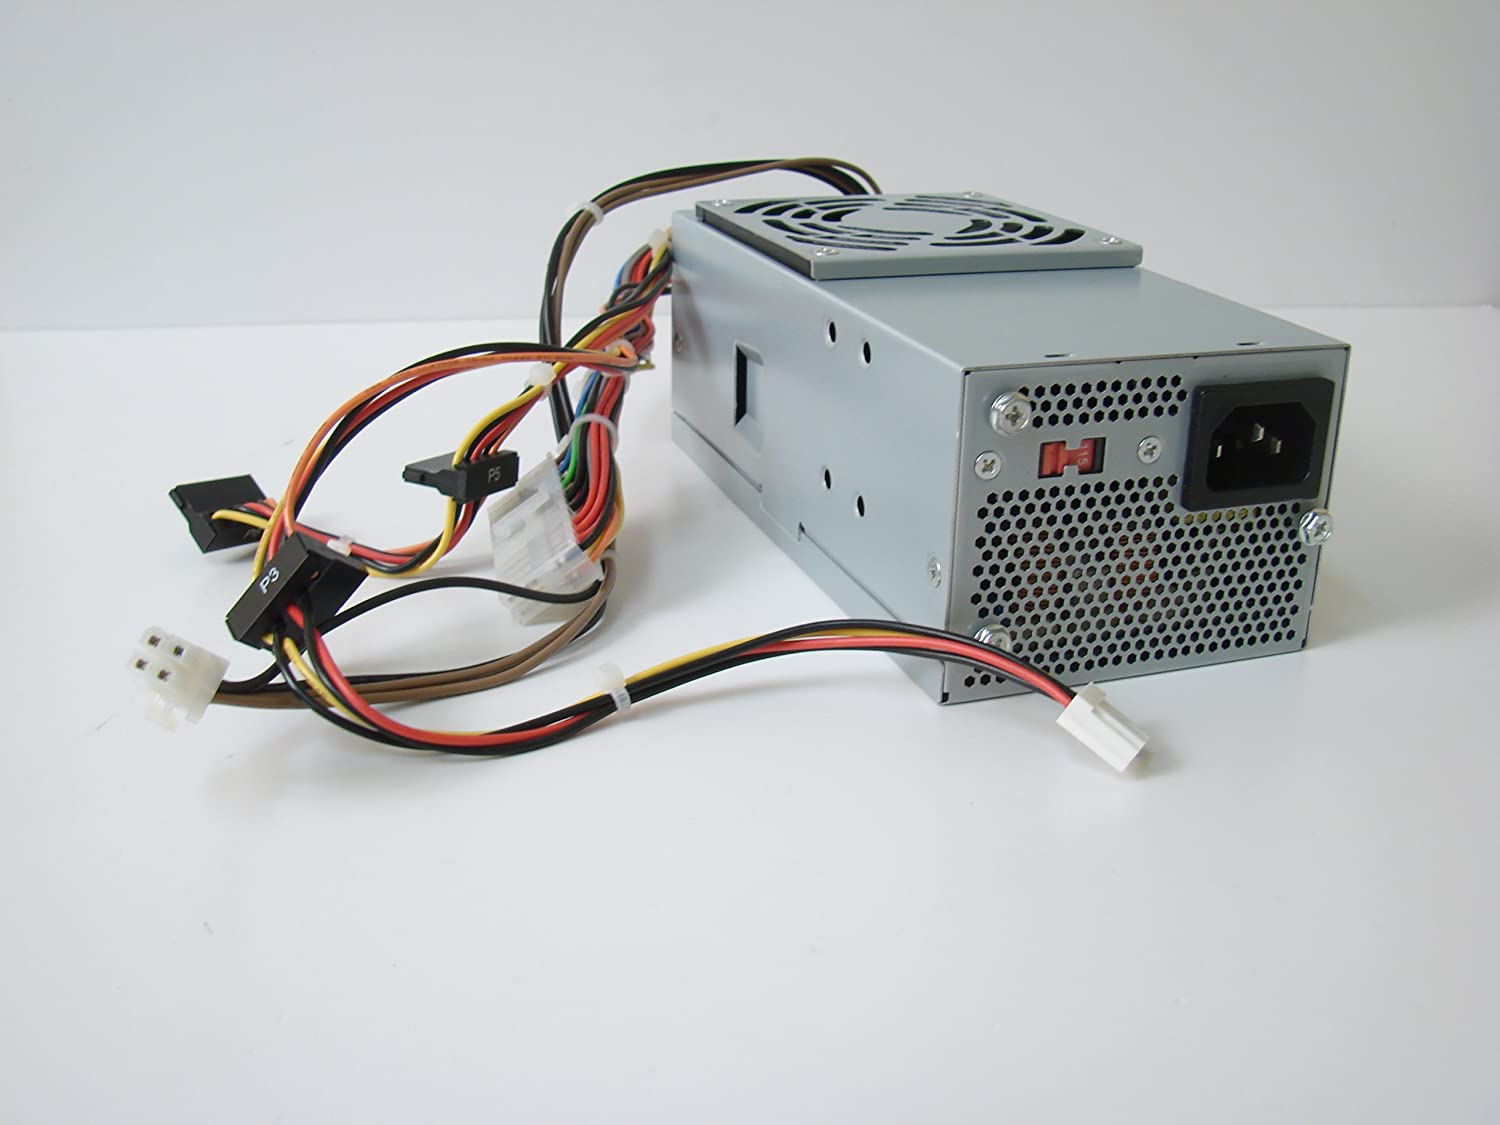 Amazon.in: Buy Dell 250W Power Supply for Dell Inspiron 530s ...